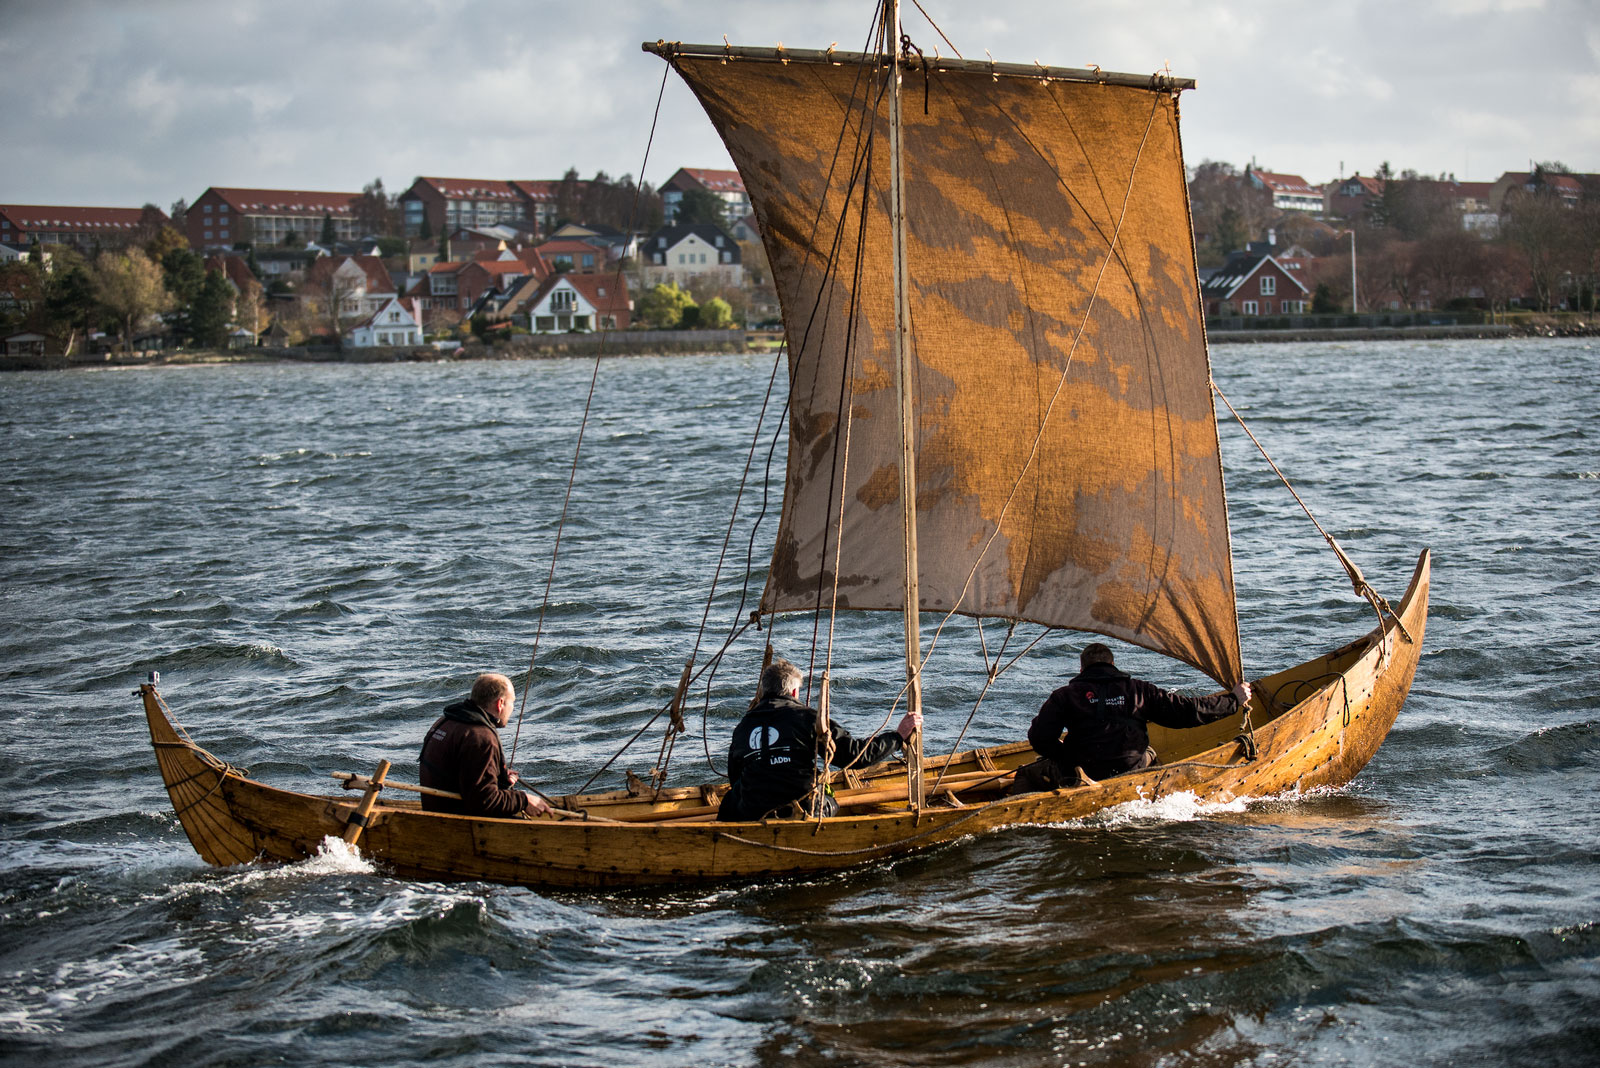 The Gislinge Boat Open Source Project: An Old Boat and a New Idea